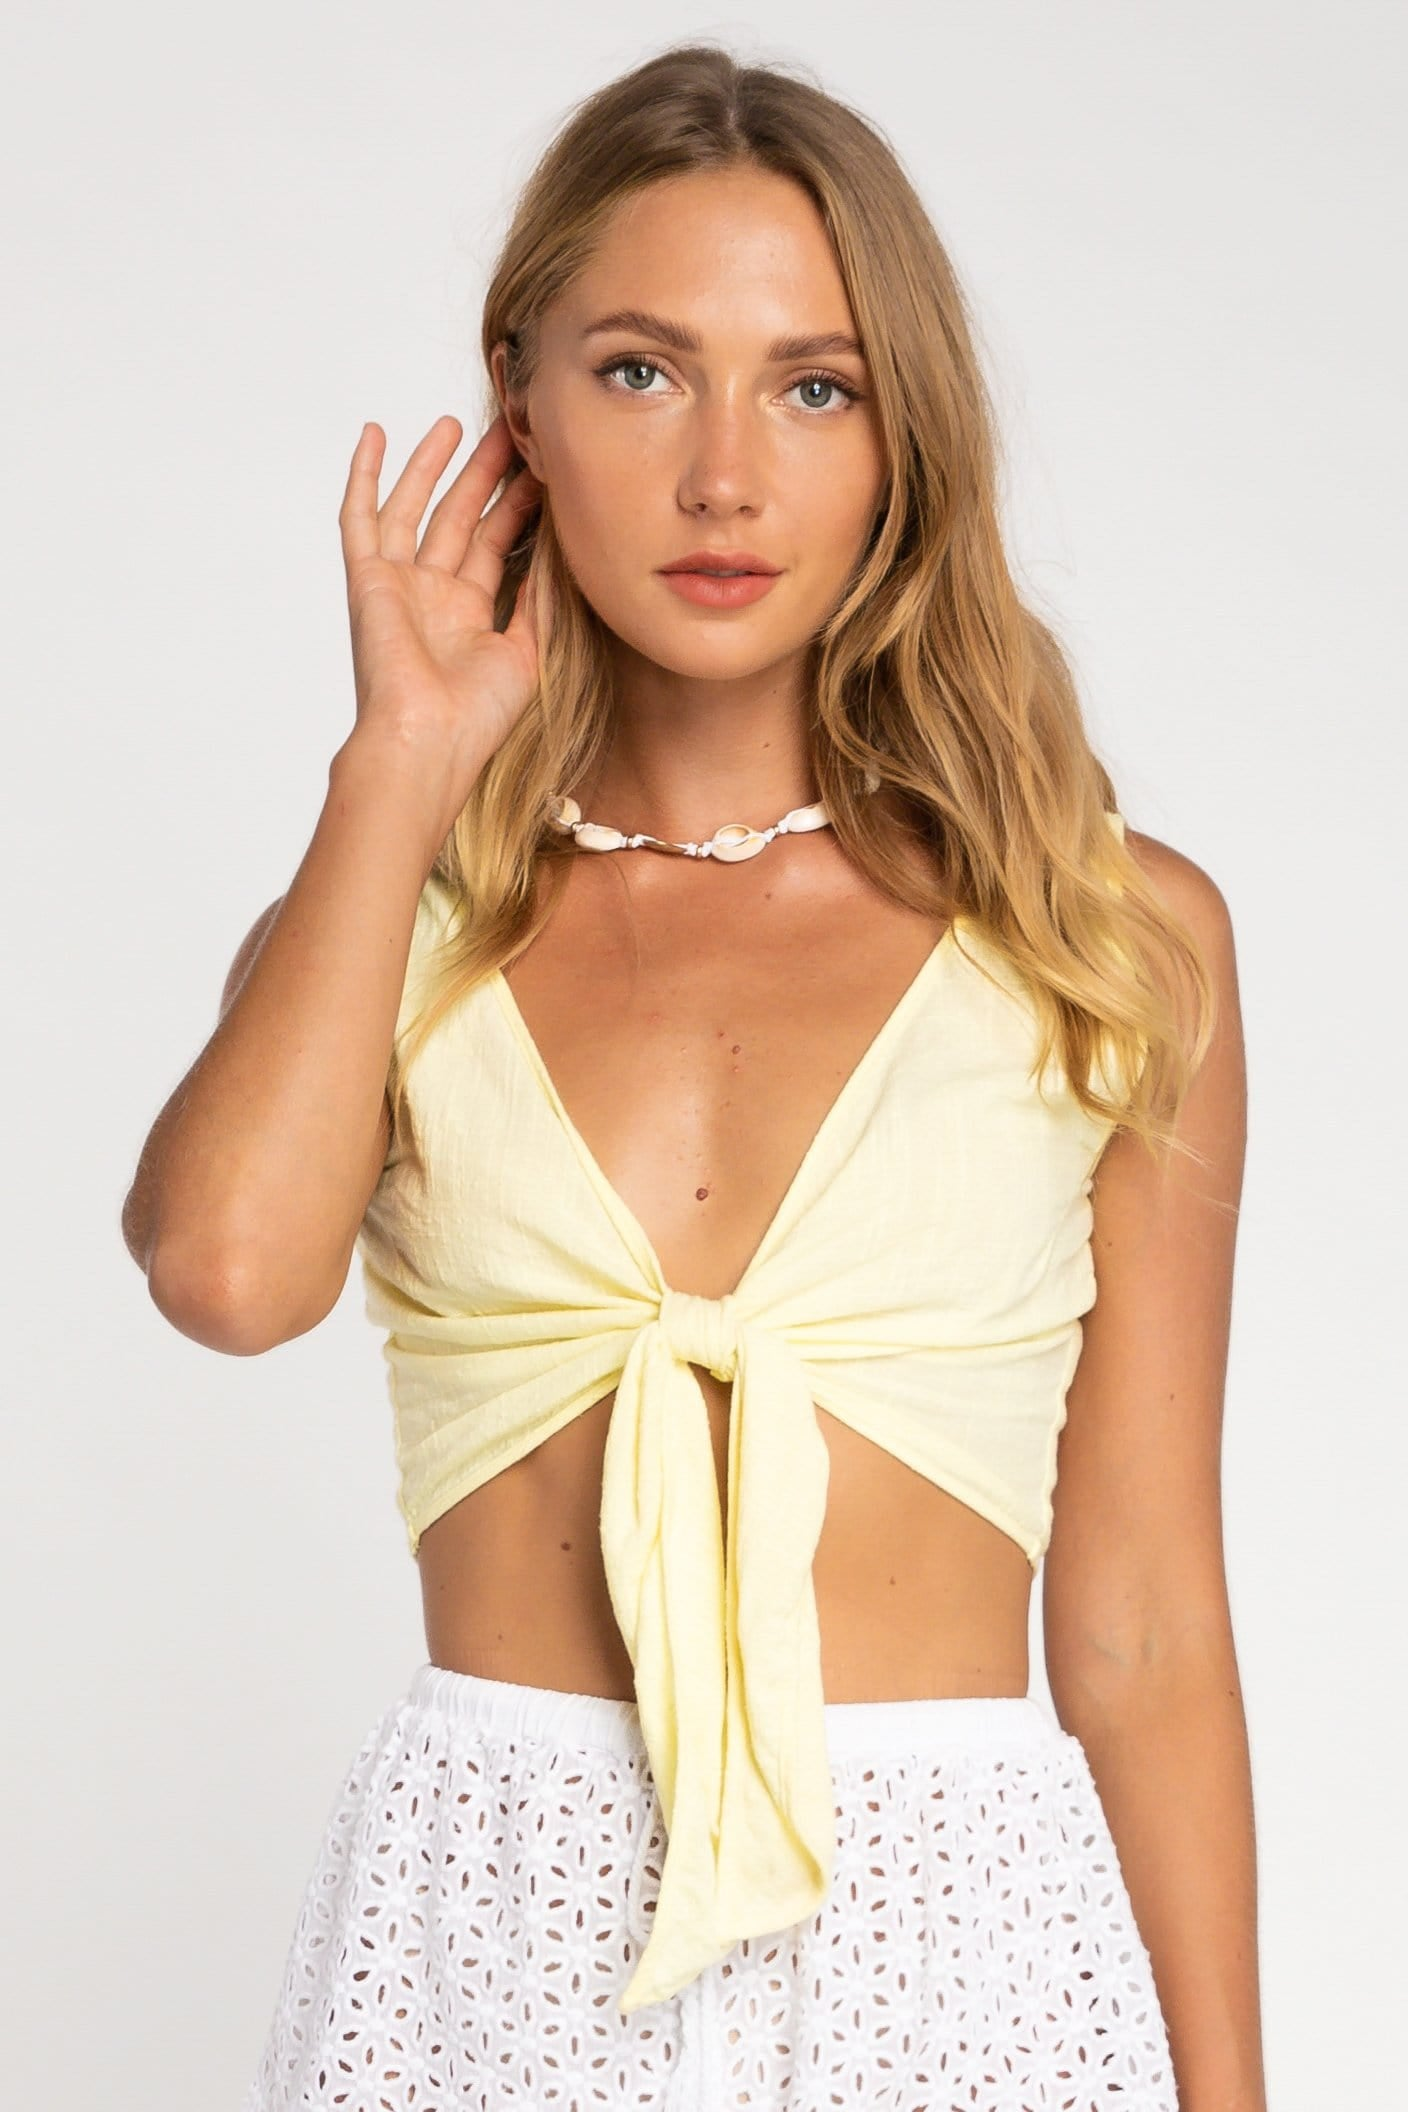 Sina Tie Top - Woman Top - LOST IN PARADISE